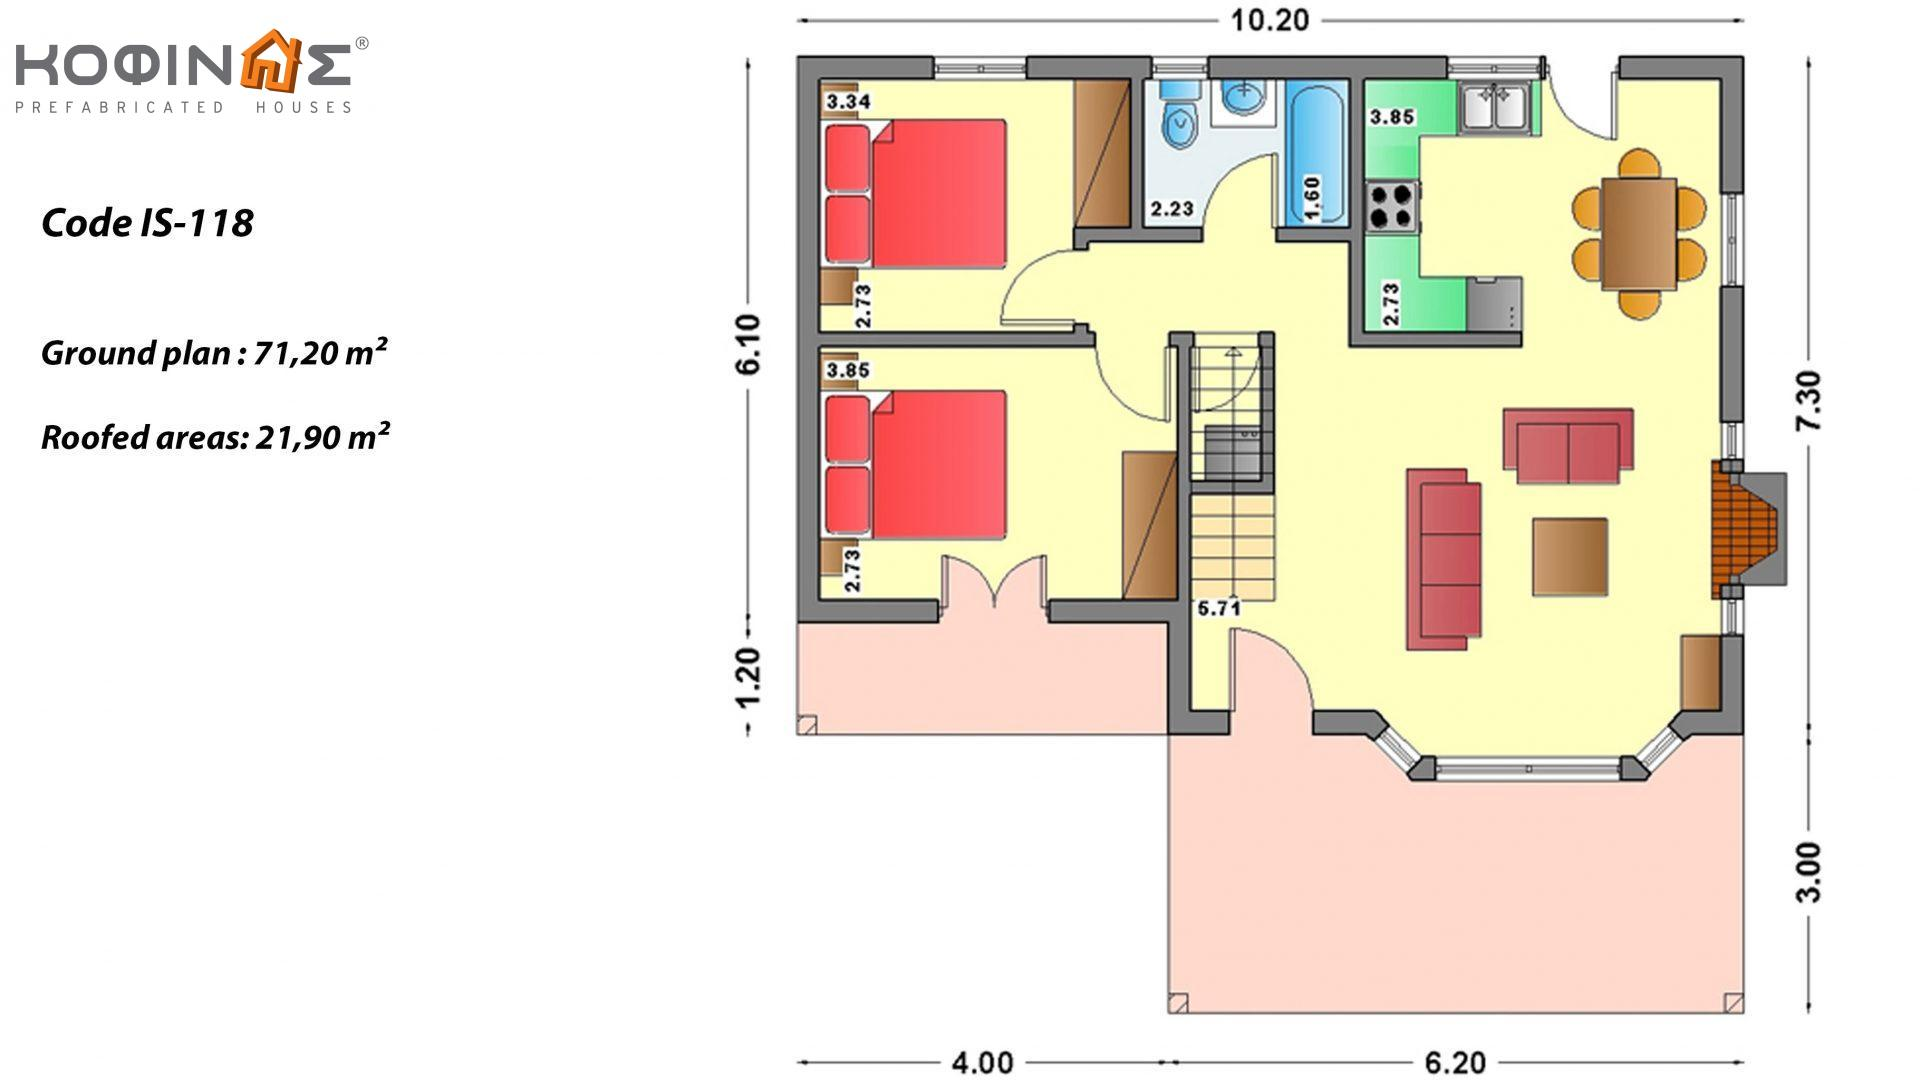 1-story house with attic IS-118, total surface of 118,20 m² ,roofed areas 21,90 m²